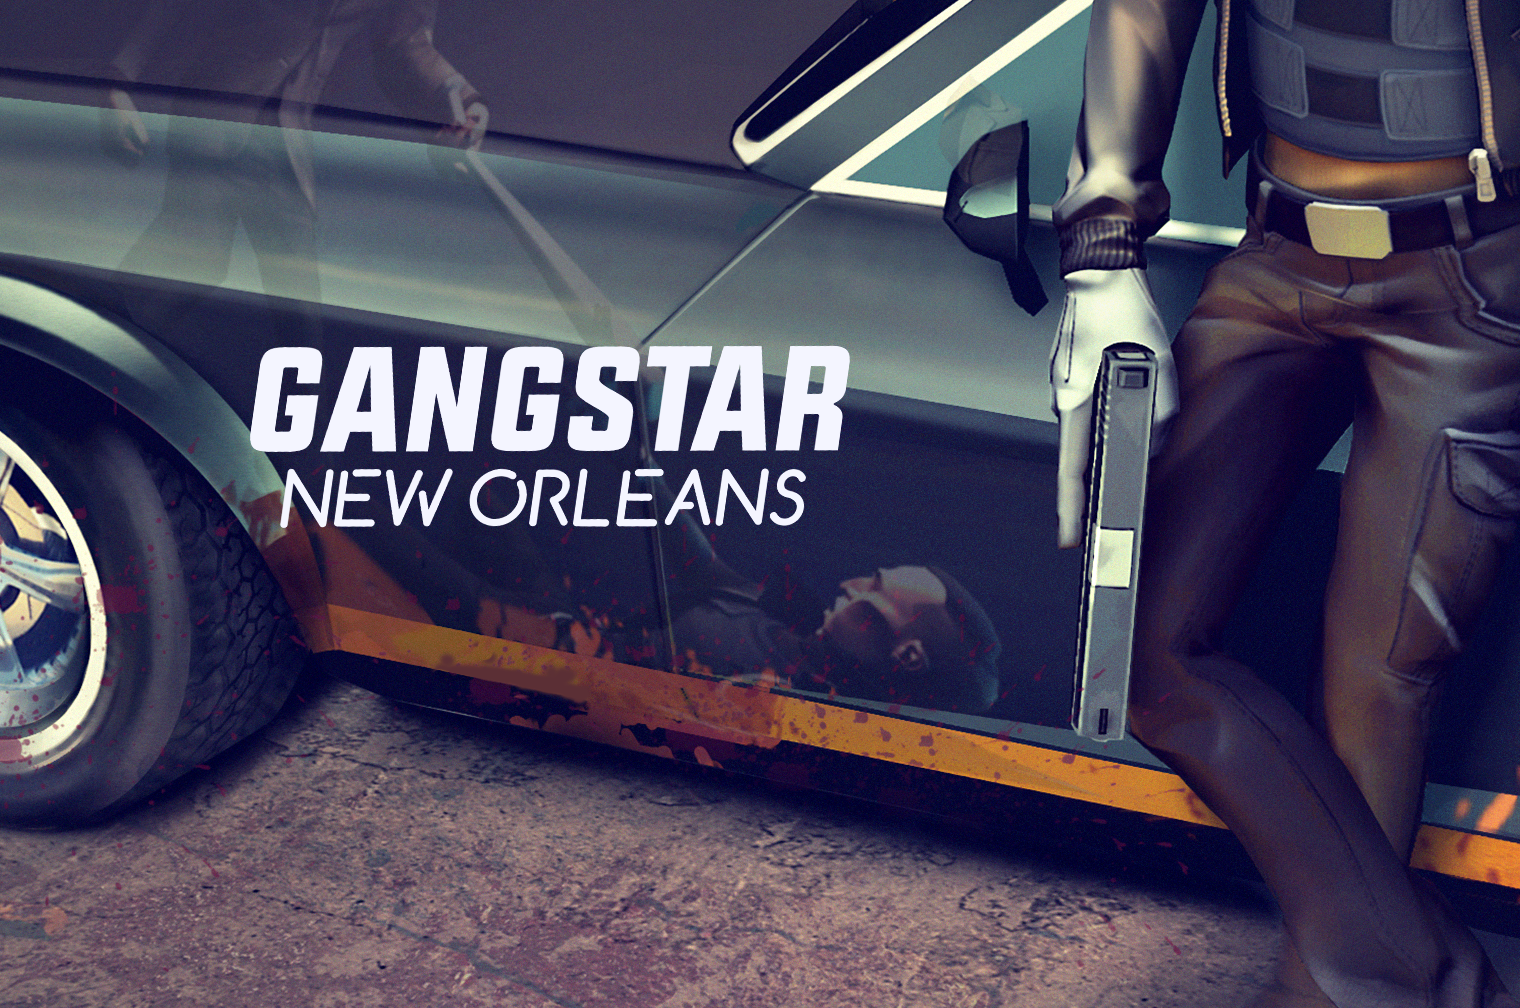 [Update] The GTA-like Gangstar: New Orleans hits out on iOS and Android